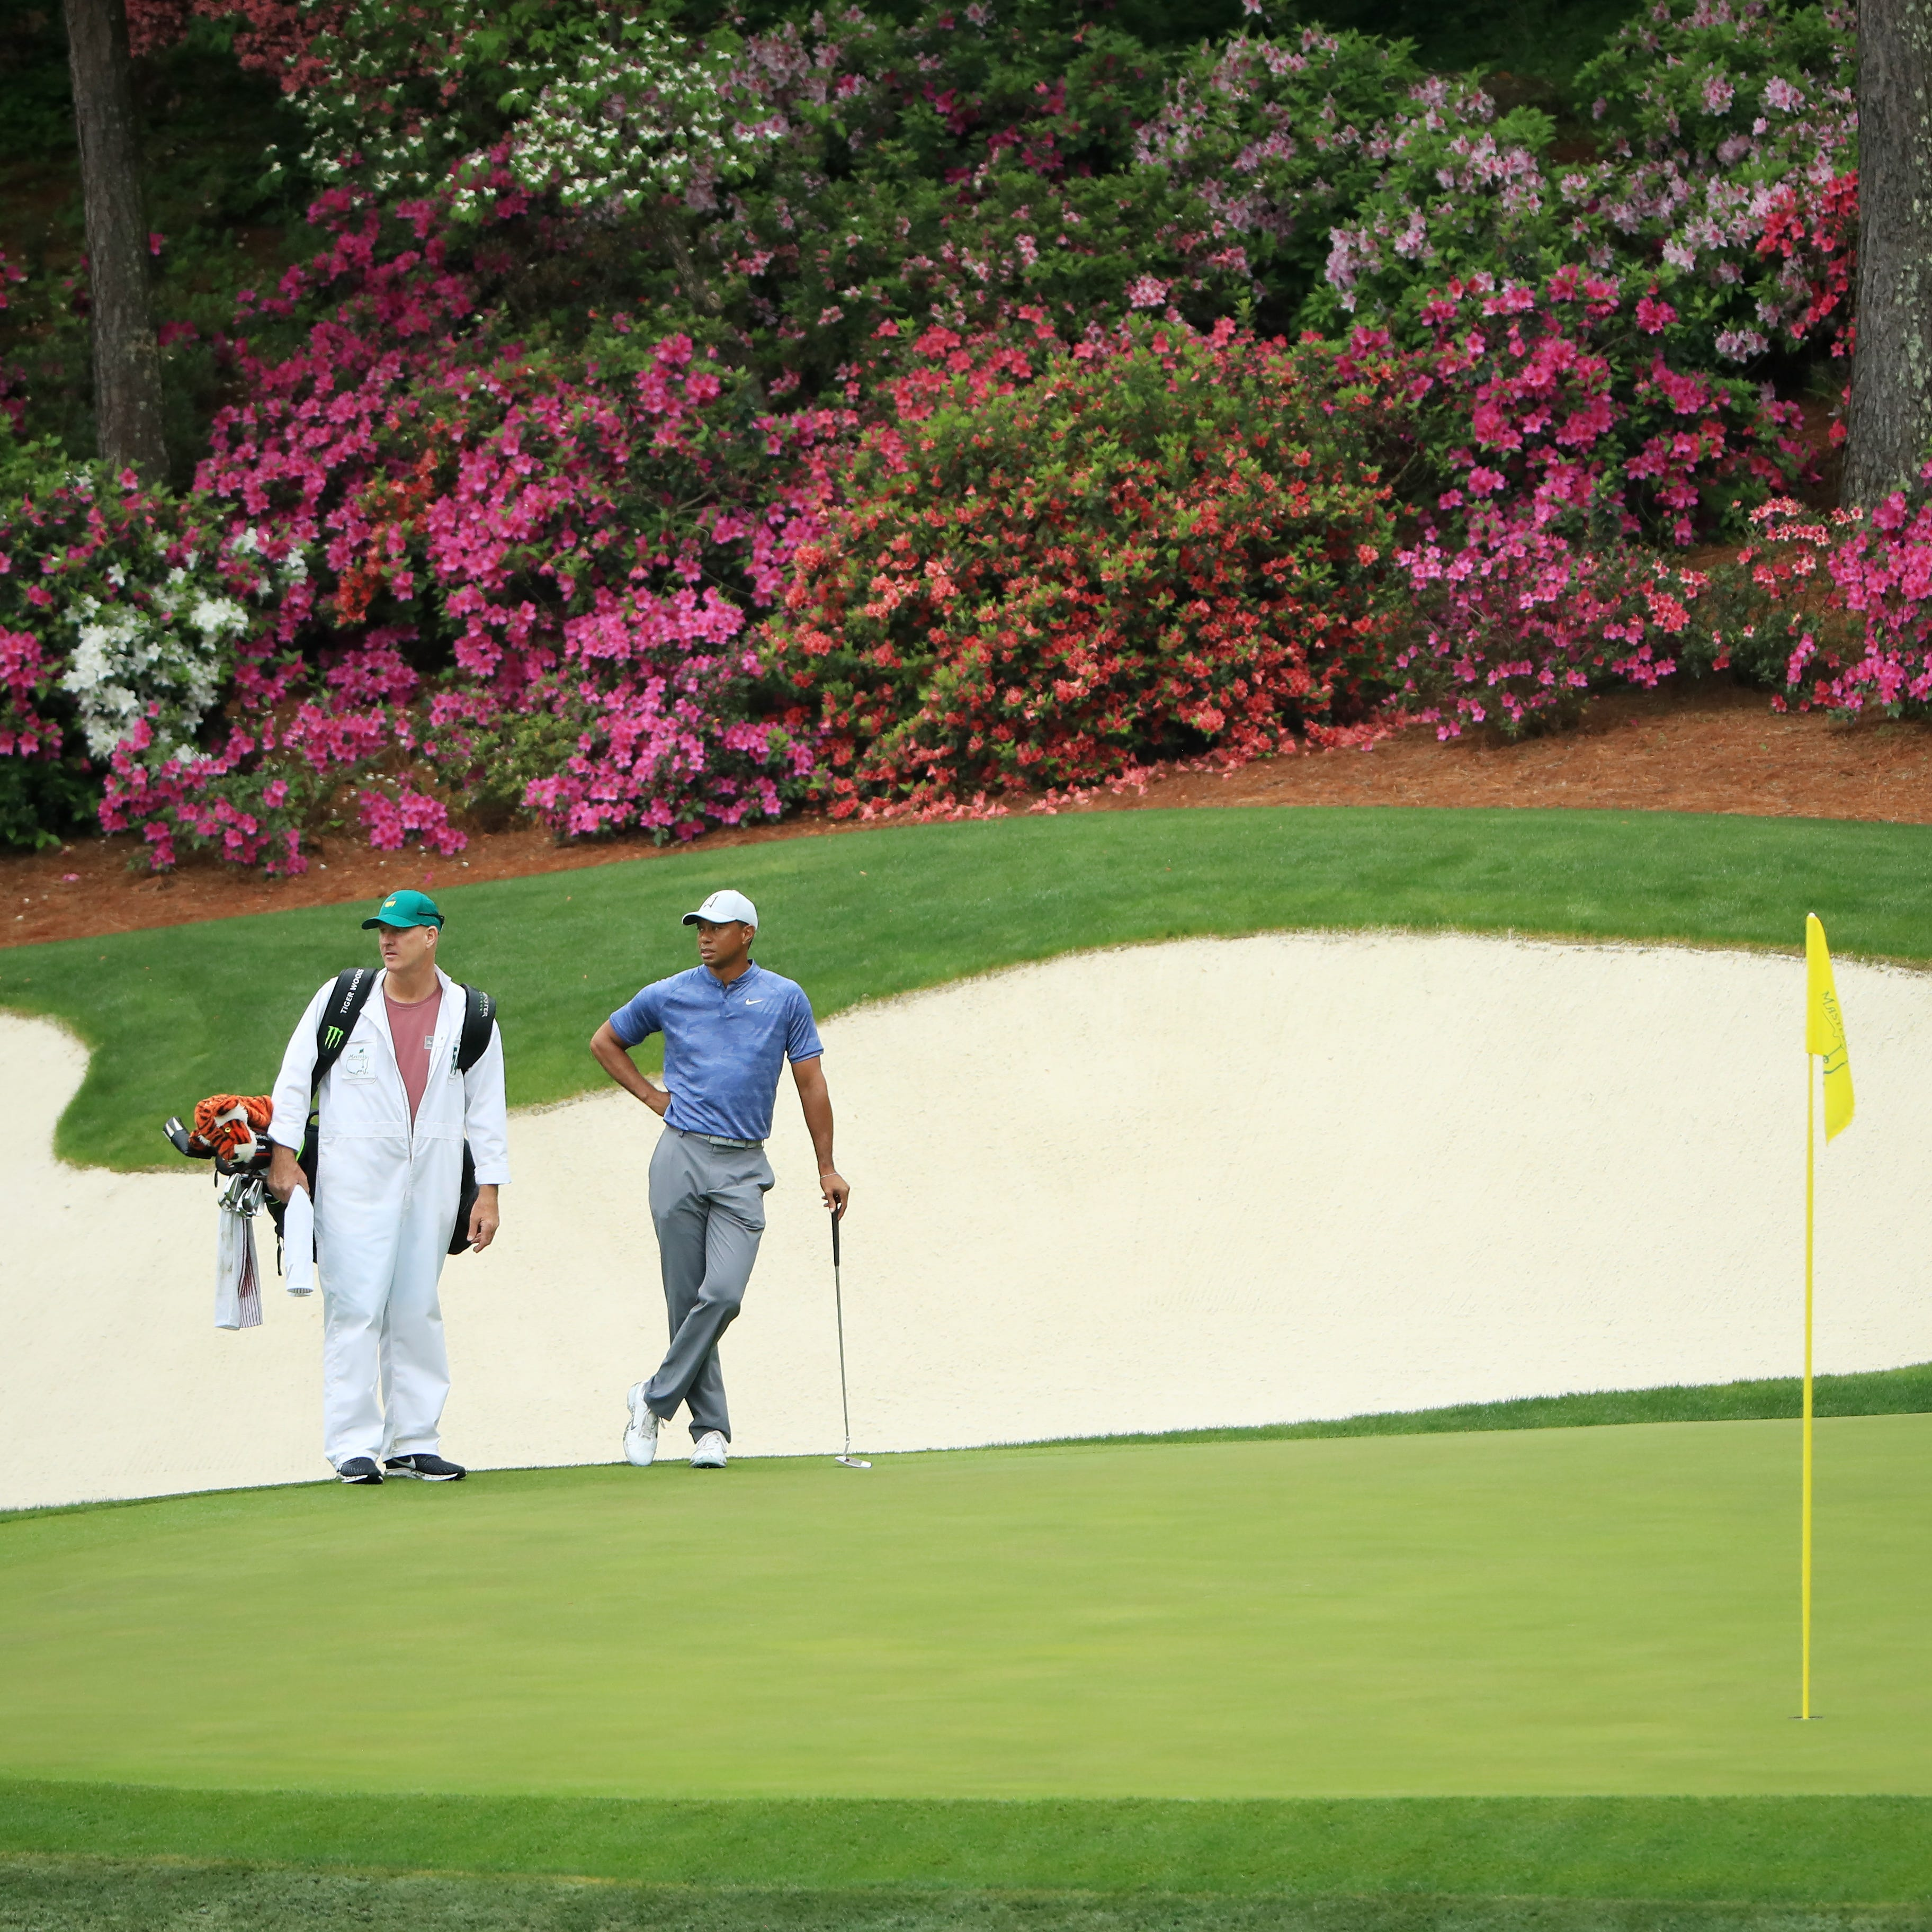 I played Augusta National. Here's how it feels to play the iconic course